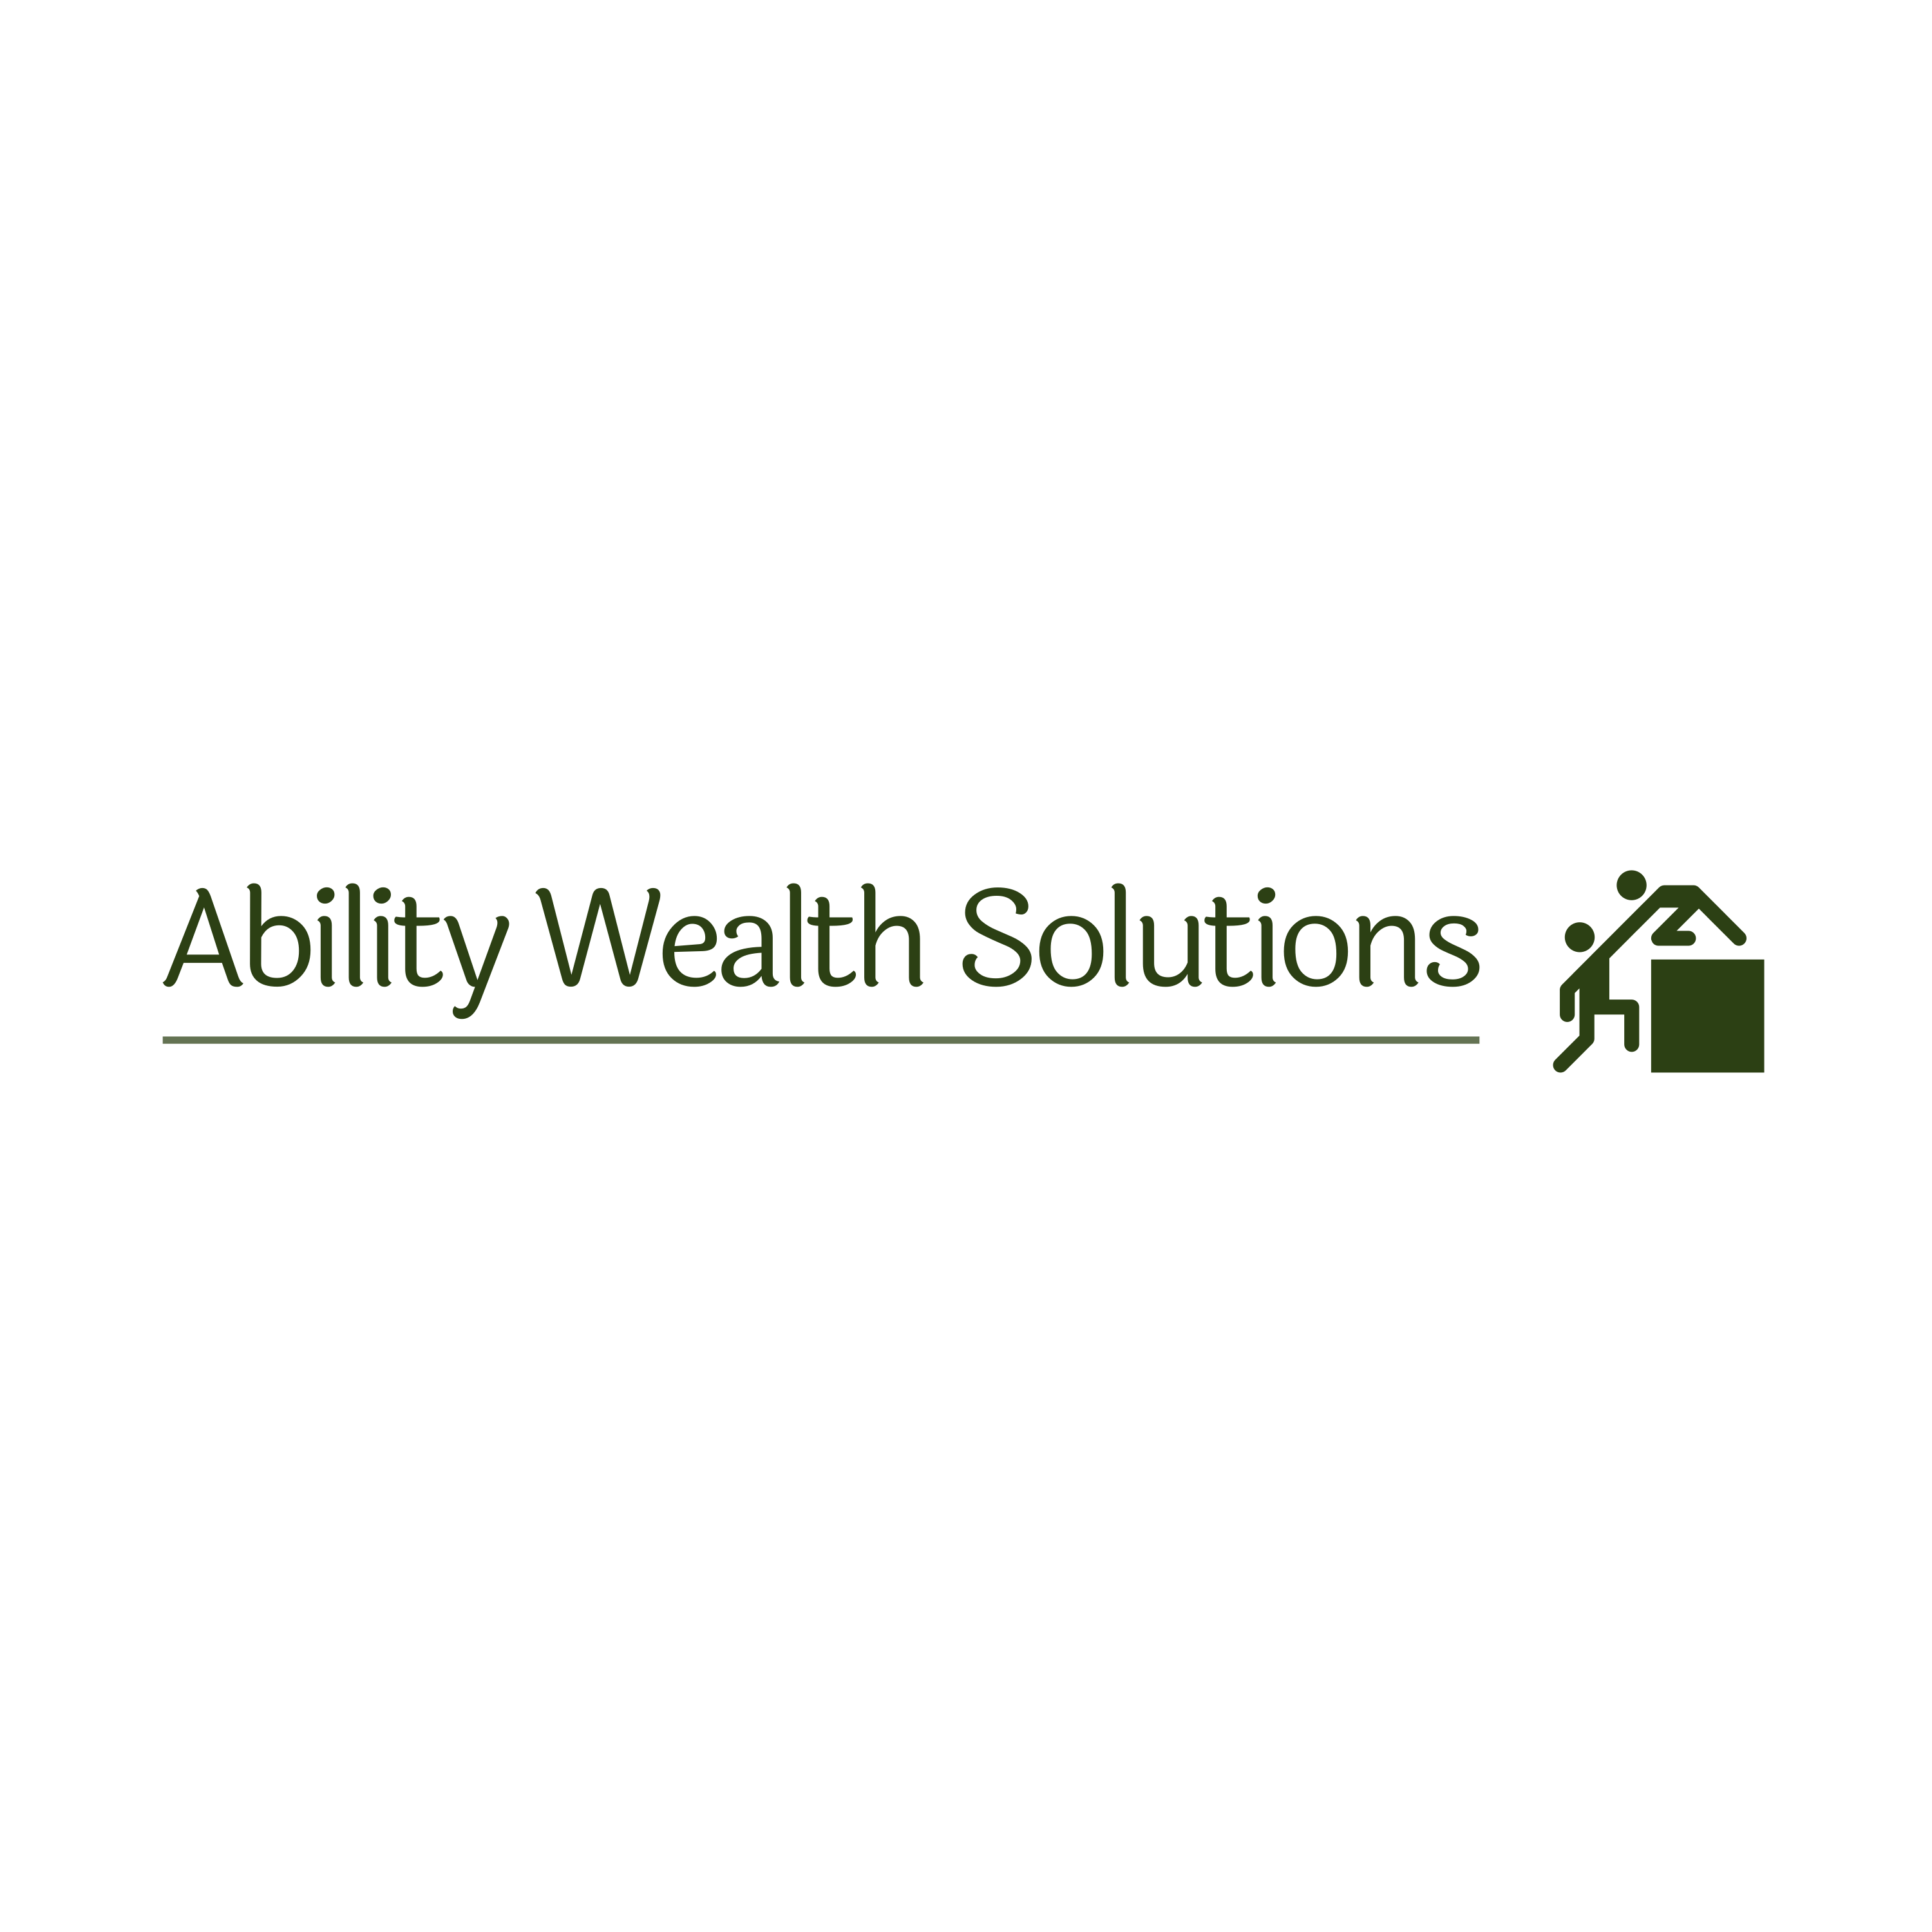 Ability Wealth Solutions